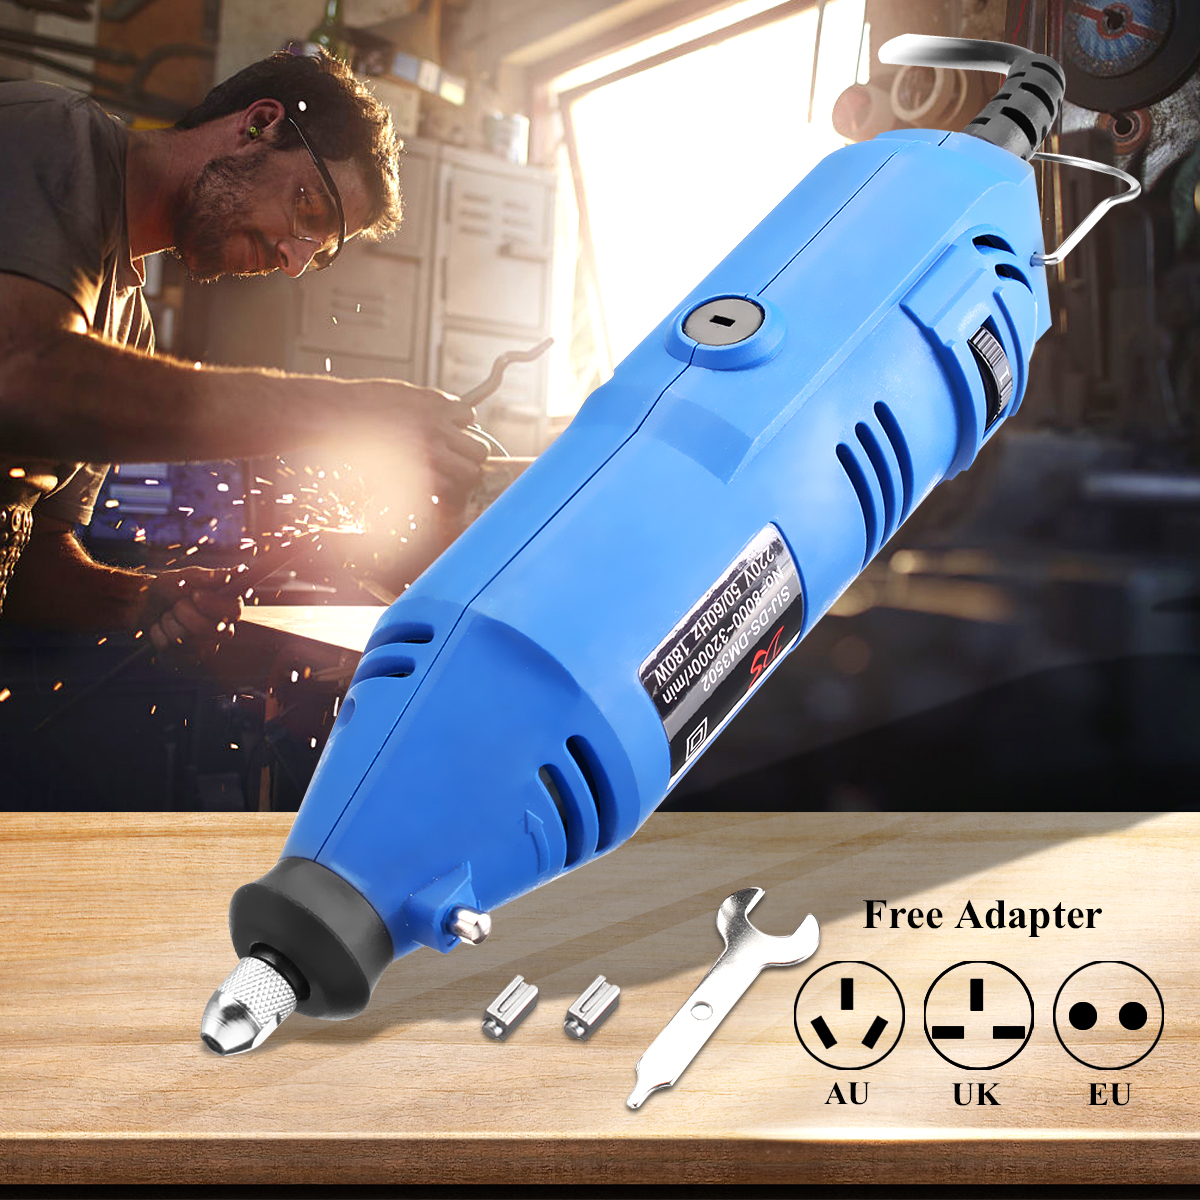 220V Mini Electric Grinder Variable Speed Rotary Tools Handle Electric Drill Engraving Pen Grinder 180W Grinding Machine trochilus400w drills grinding rotary machine mini grinder electric engravers adjustable angle grinder tools sets moledores80505